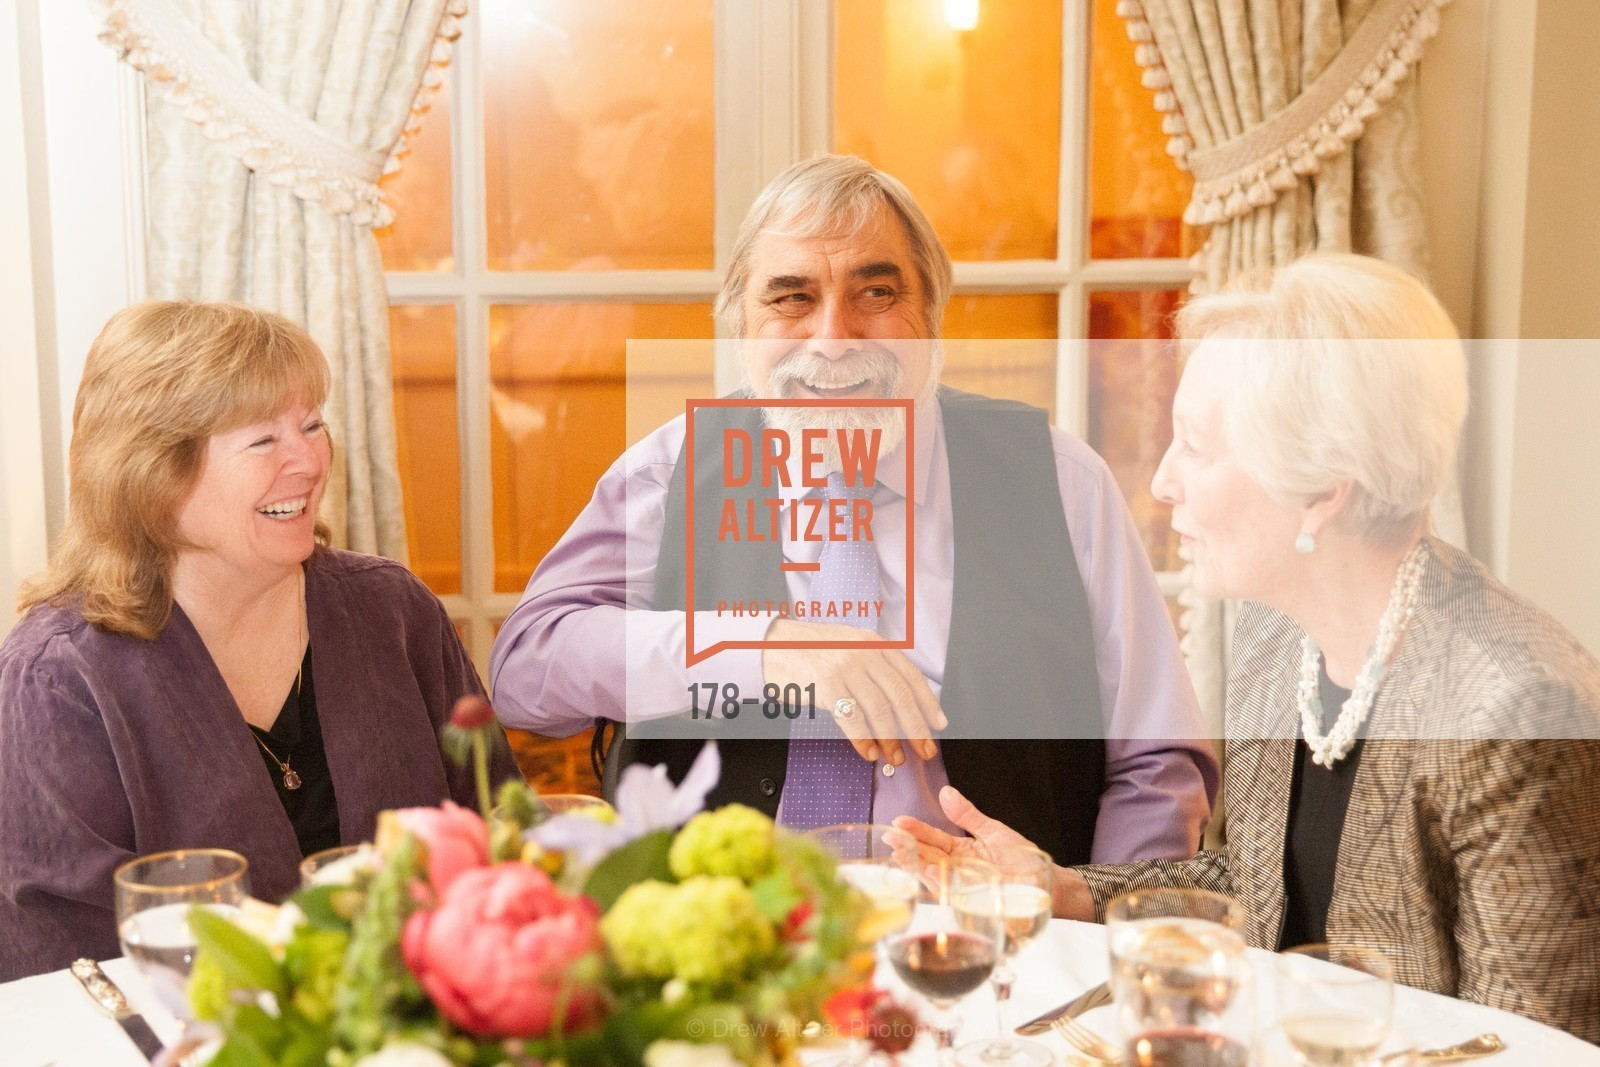 Jo Rogers, George Rogers, Sally Gallagher, GETTY Hosts Leakey Foundation Dinner, US, April 24th, 2015,Drew Altizer, Drew Altizer Photography, full-service agency, private events, San Francisco photographer, photographer california